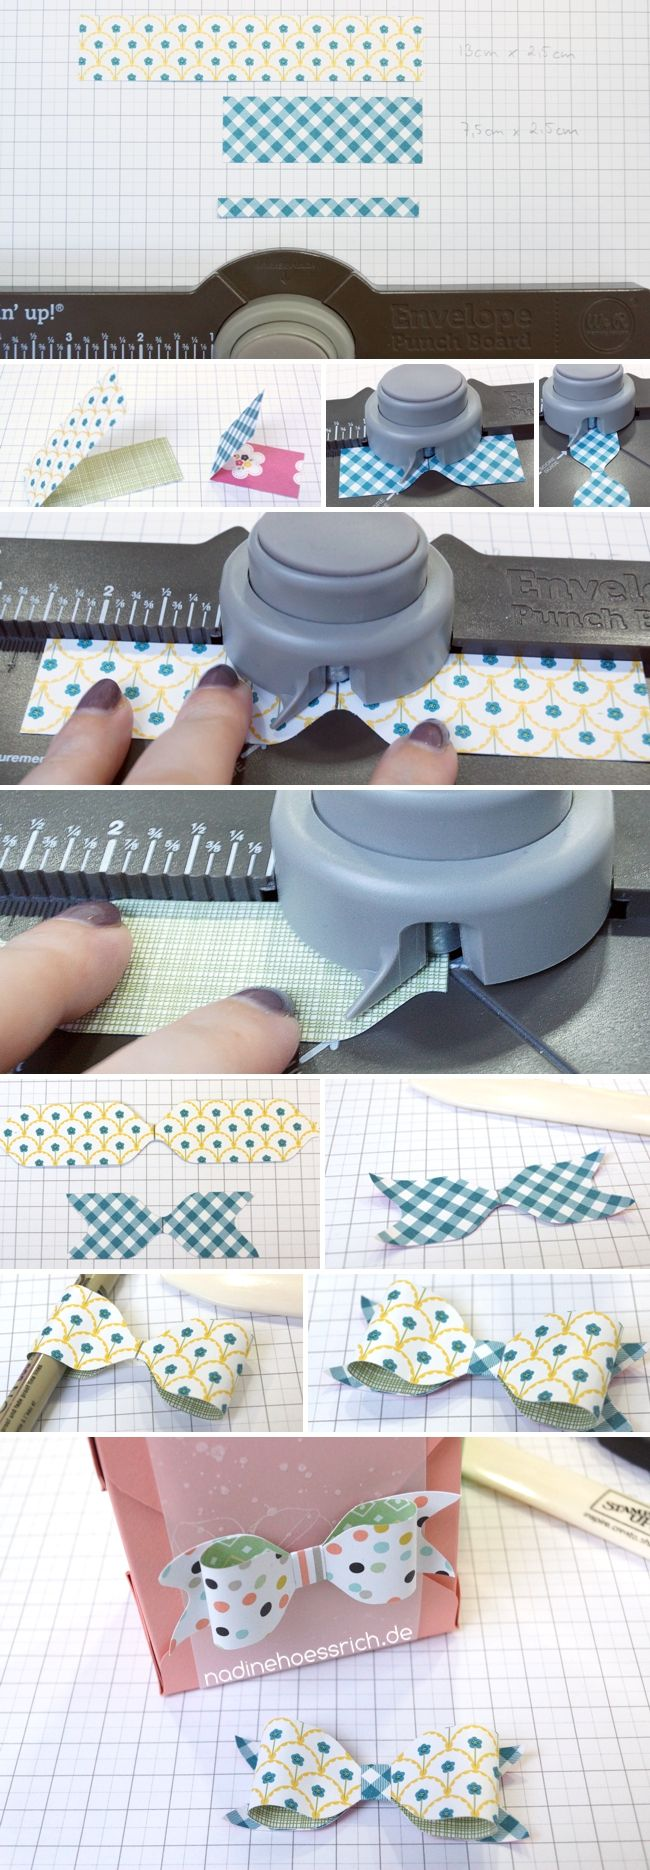 paper crafting photo tutorial: paper bows with the Envelope Punch Board ... luv the coordinating double sided papers she uses ... Stampin' Up!